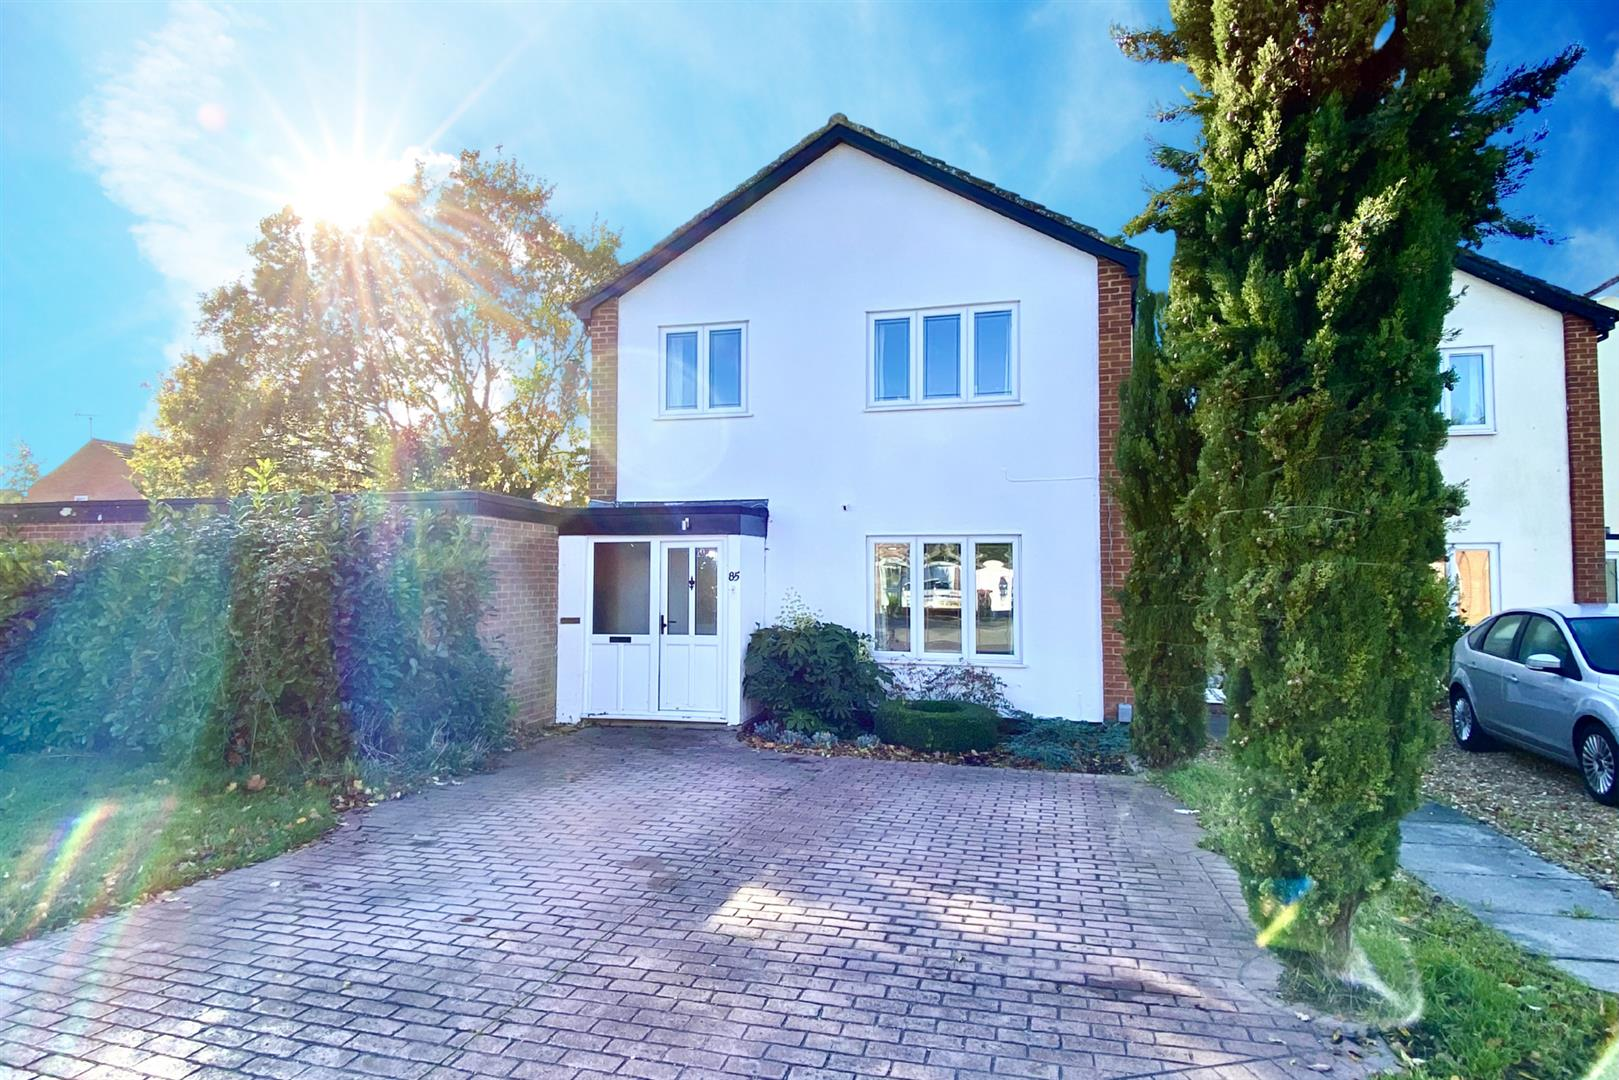 3 bed end of terrace for sale in Winnersh  - Property Image 1